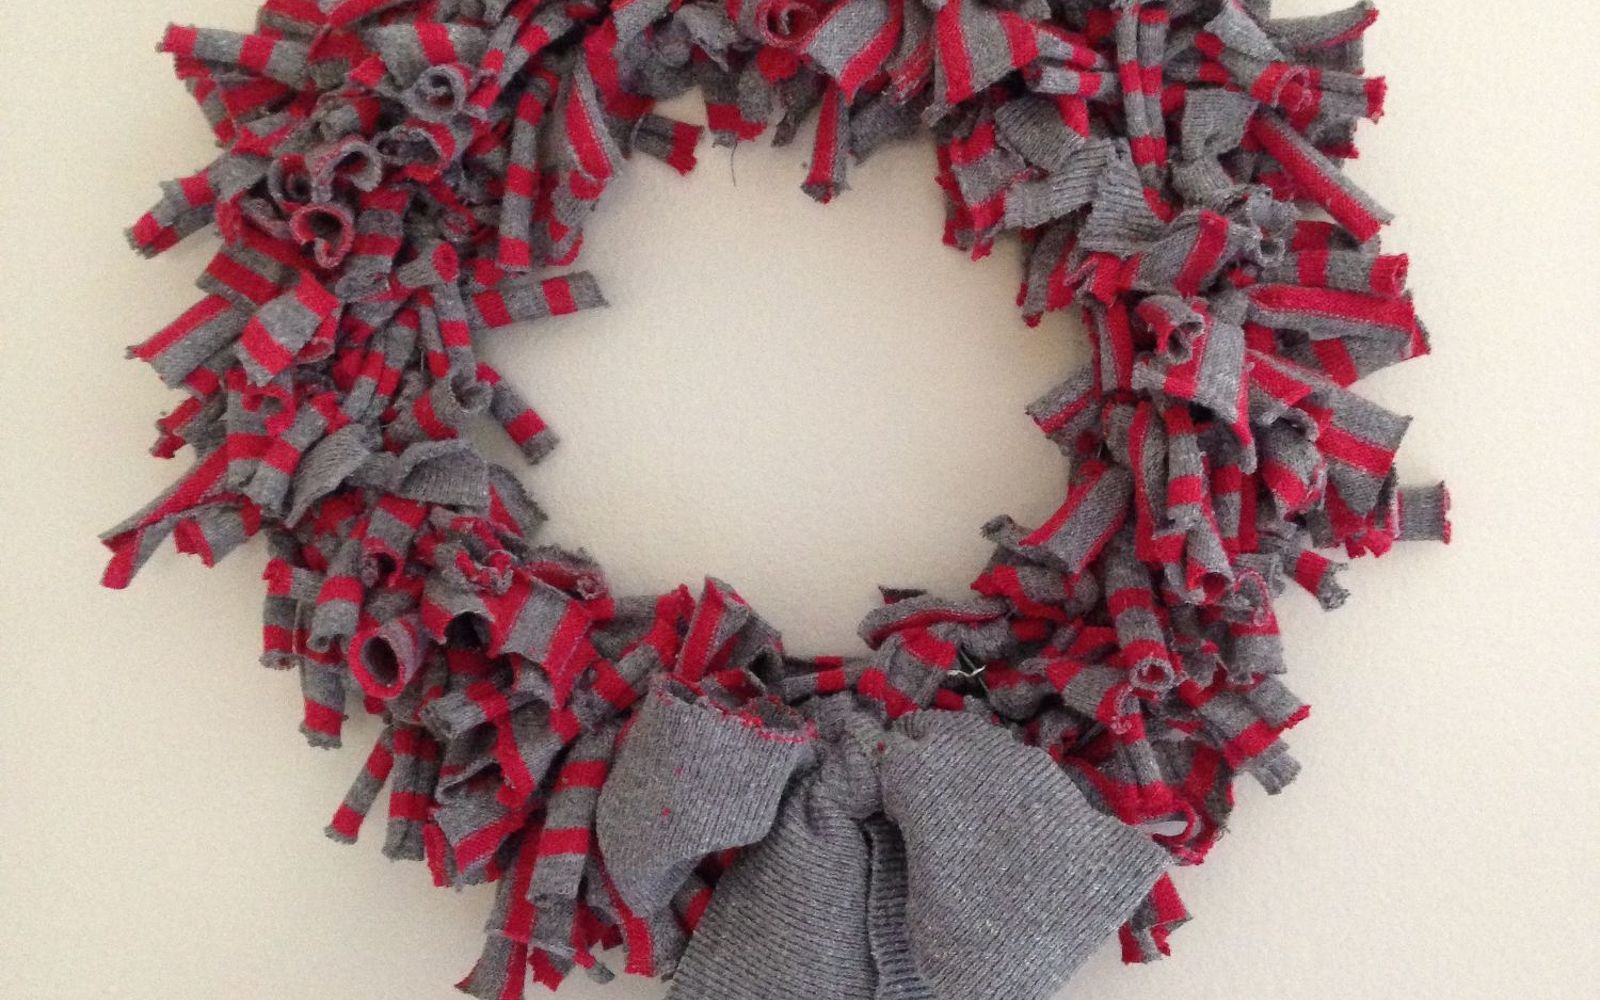 s 17 tricks to make a gorgeous wreath in half the time, Wrap Your Unused Sweater Into A New Wreath